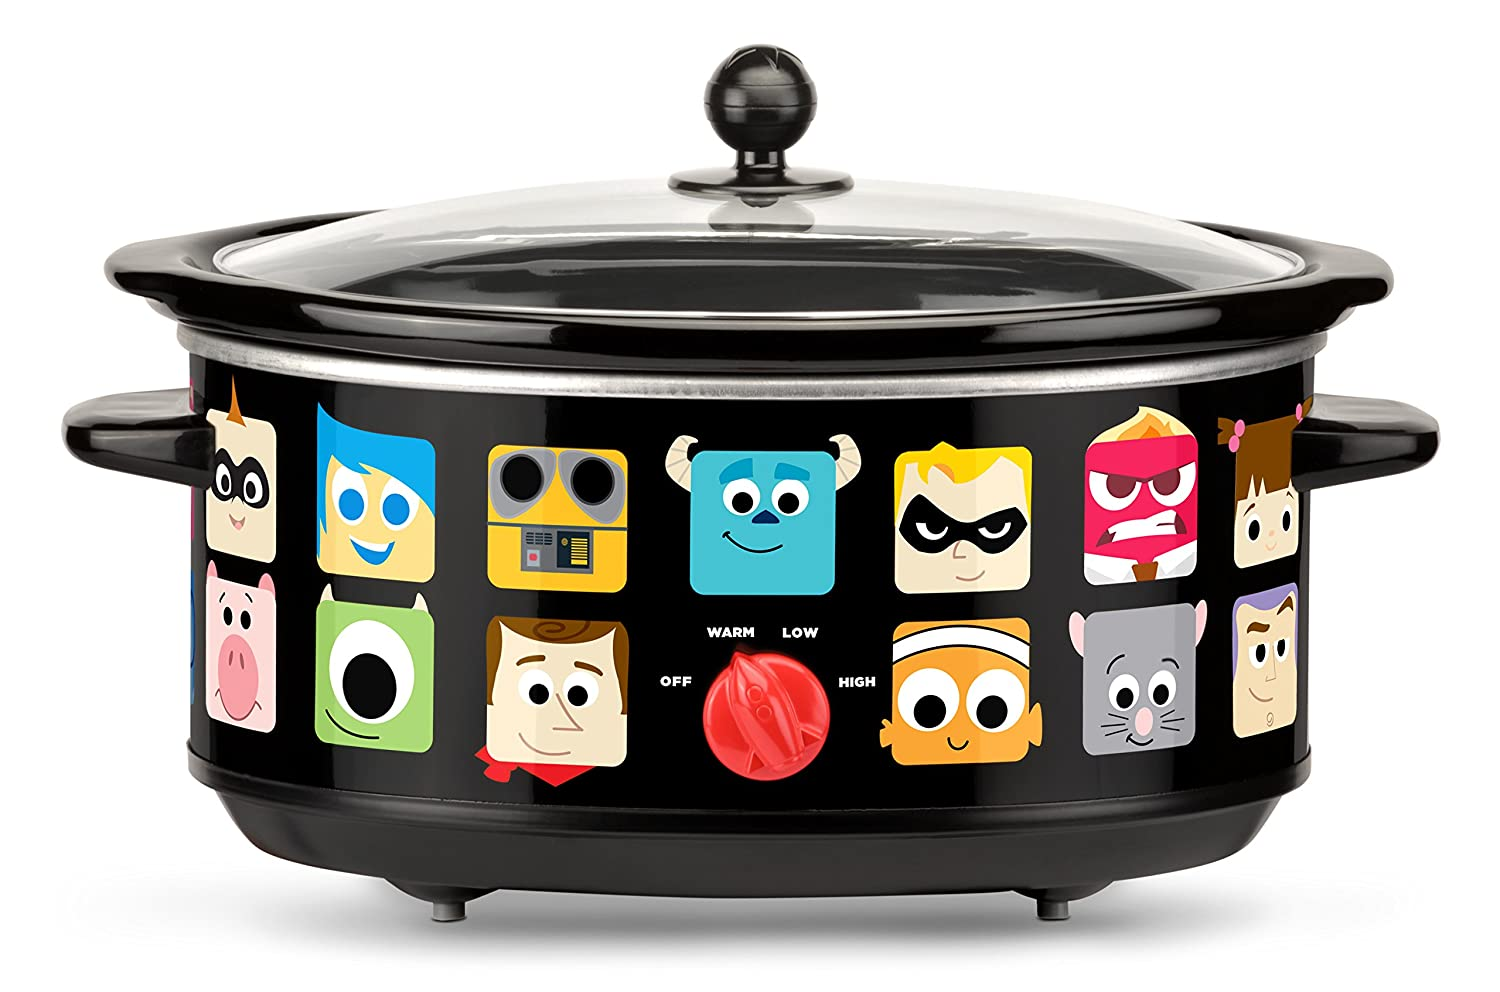 Mickey Mouse Kitchen Appliances Amazoncom Disney Pixar Oval Slow Cooker 7 Quart Black Kitchen